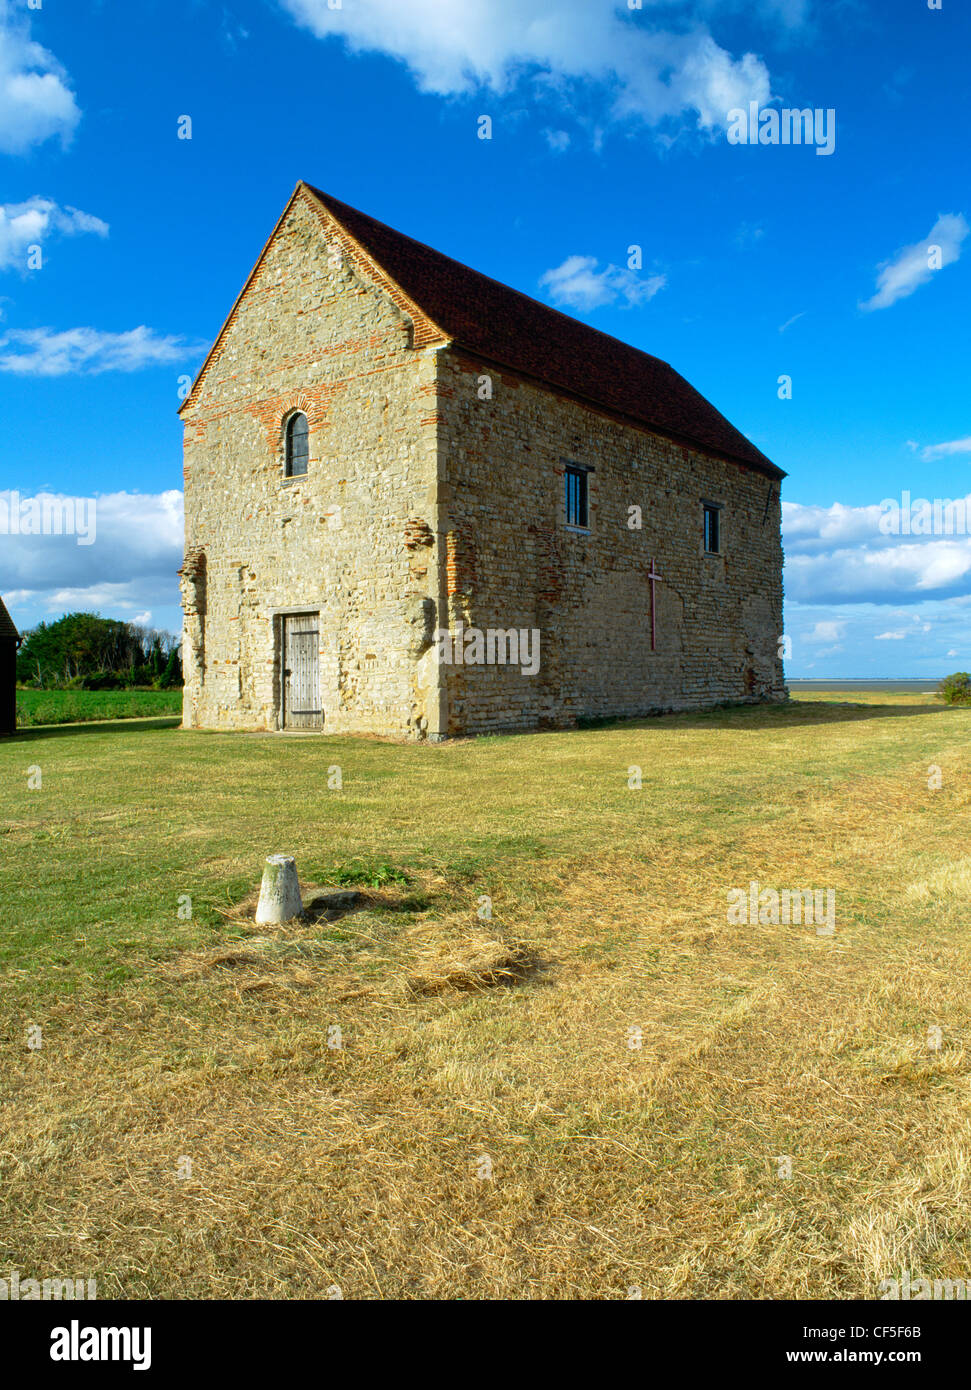 The nave of St Peter's 7th-century chapel, built of reused Roman materials on the site of Othona Roman fort. - Stock Image